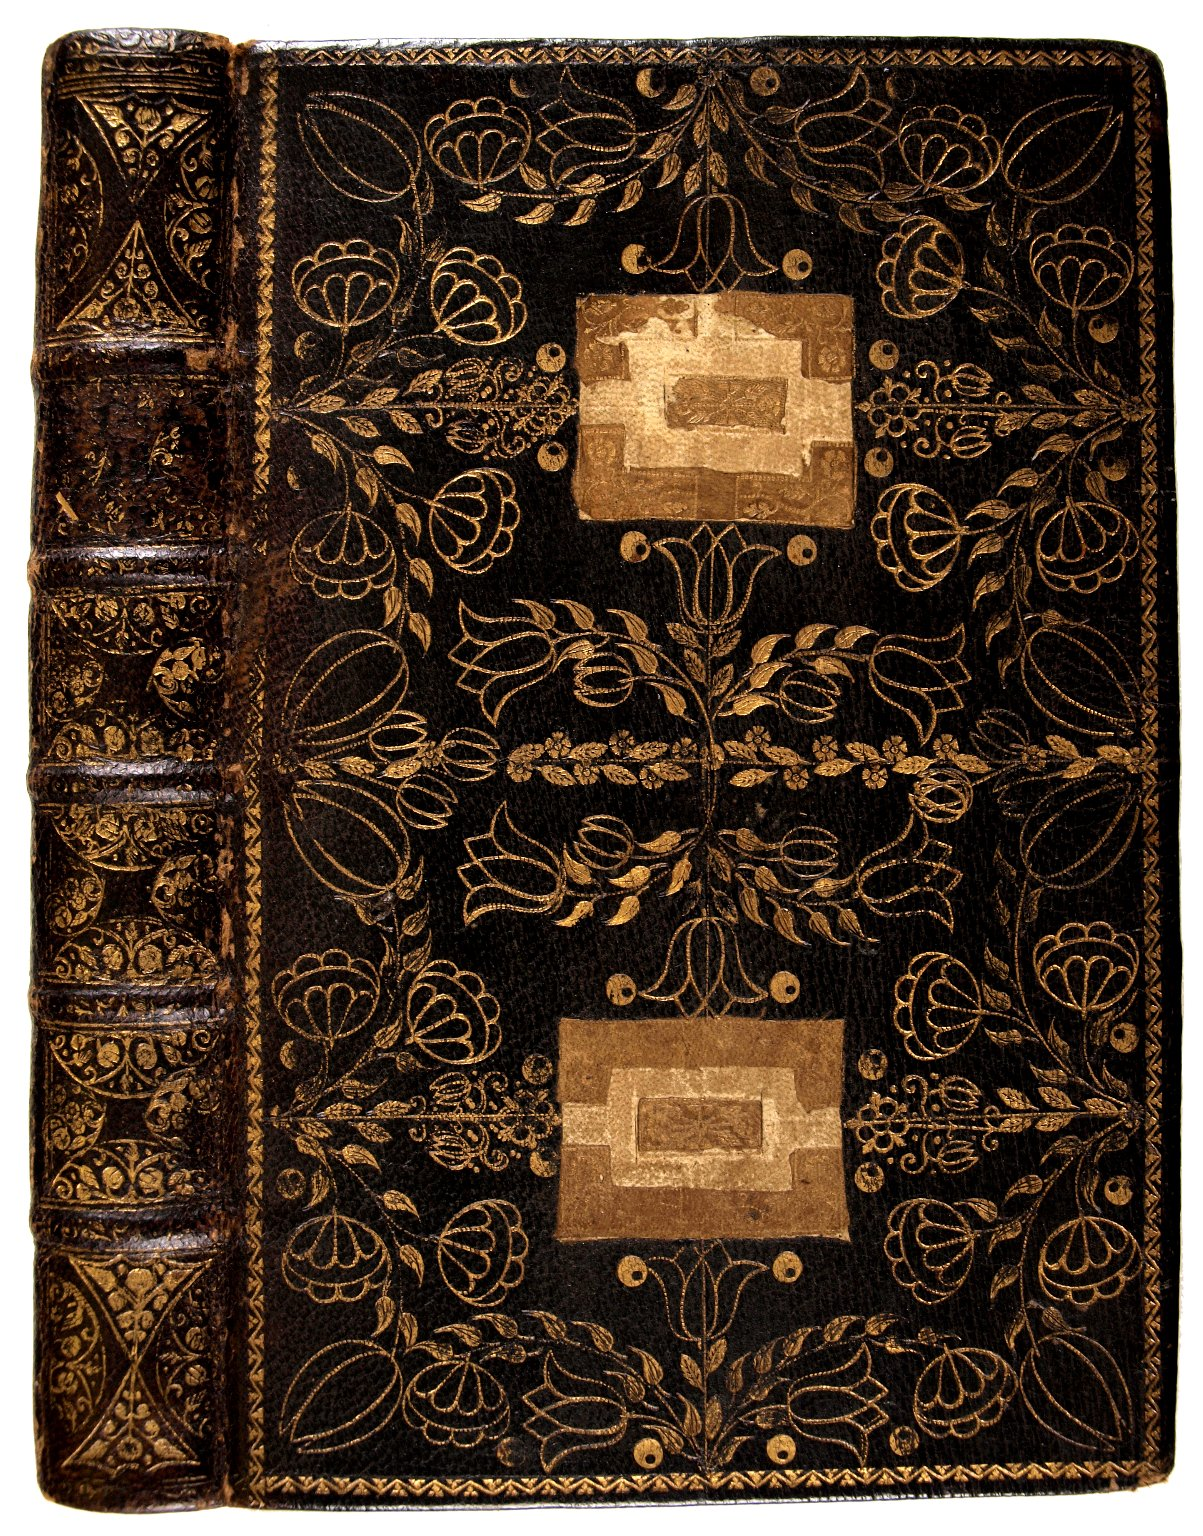 Front cover and spine, B2045.